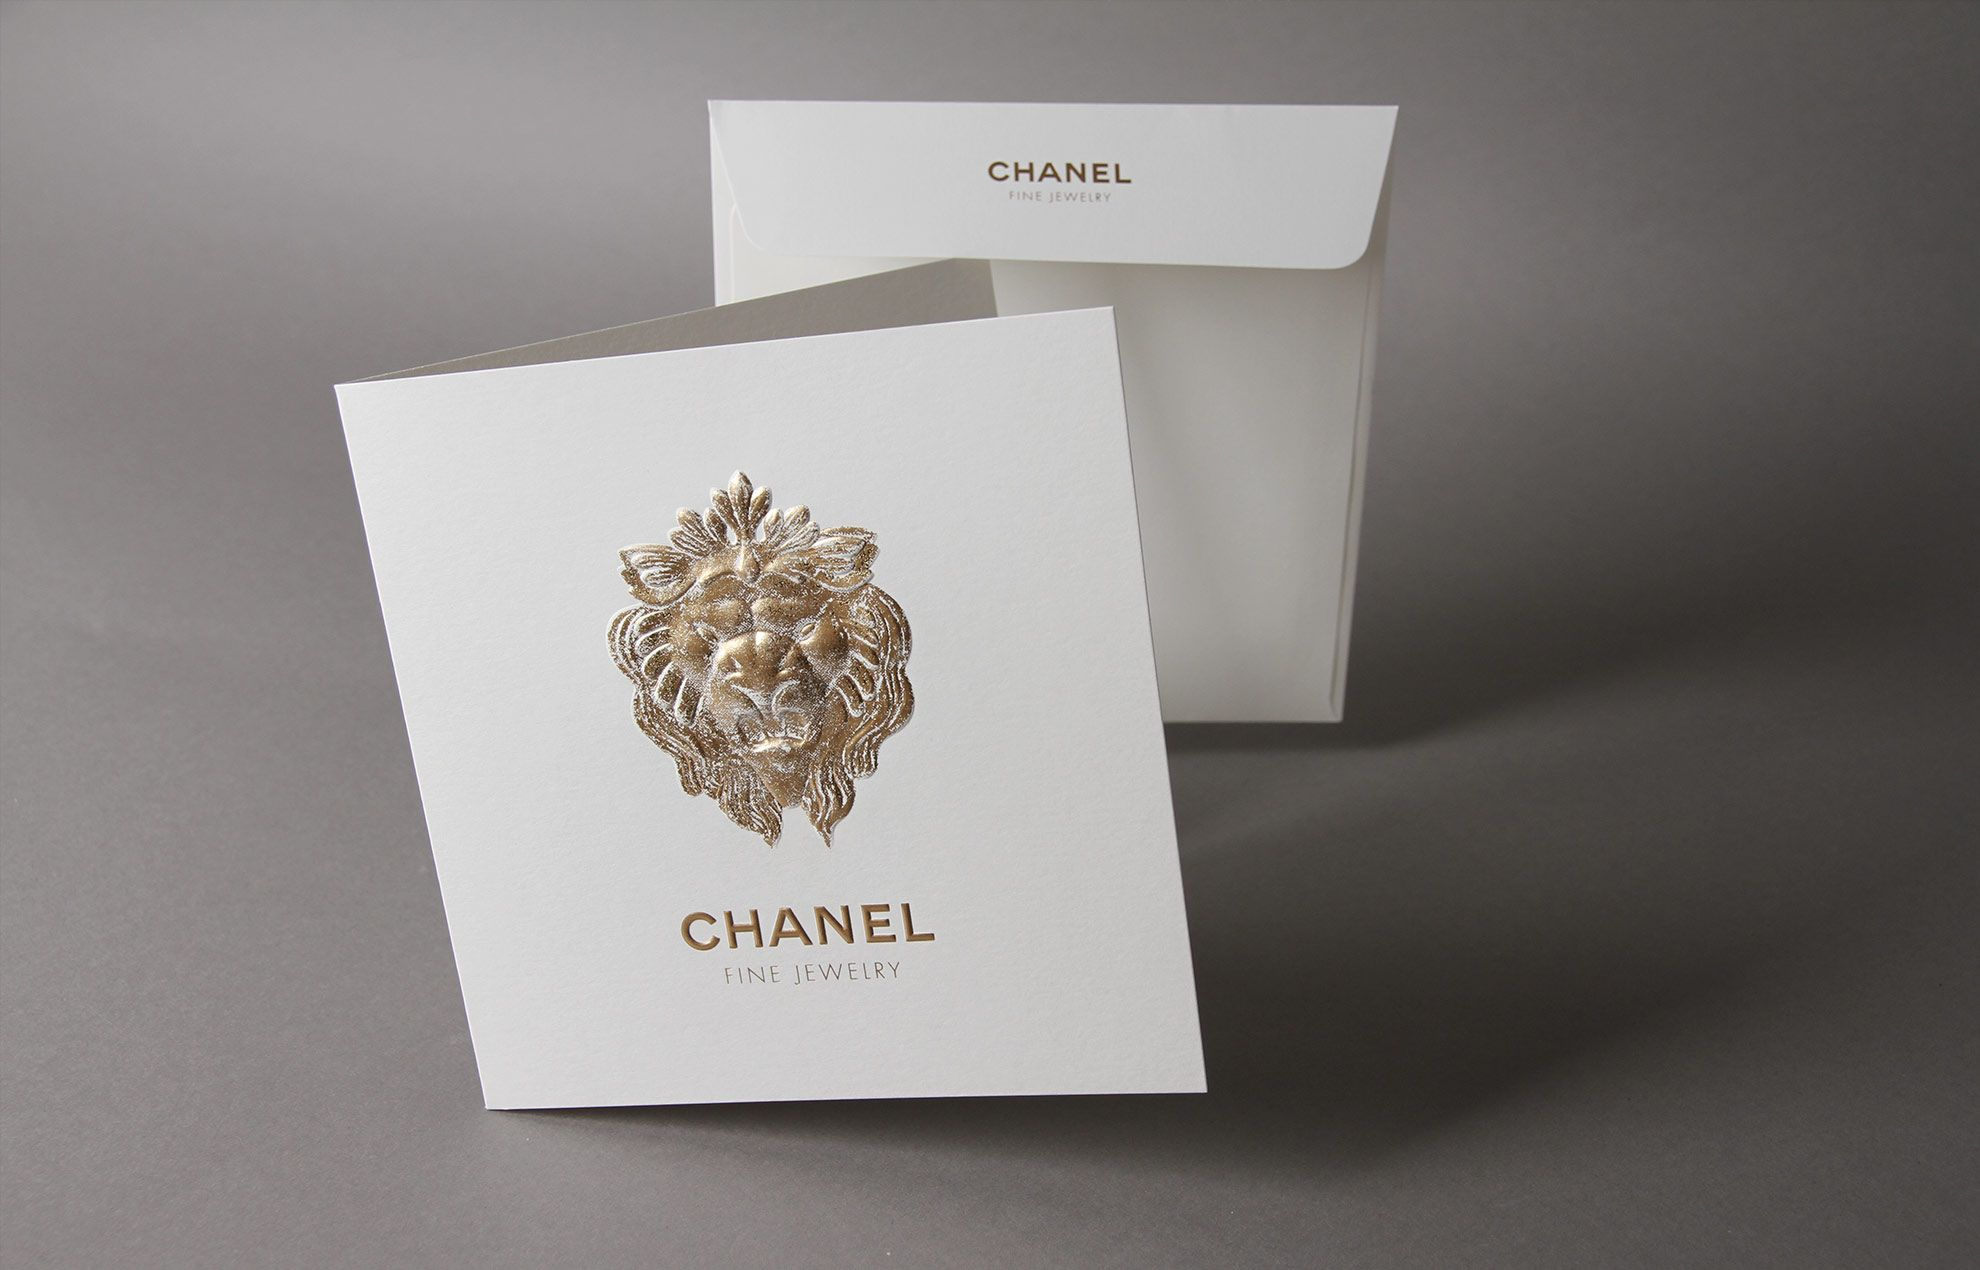 Chanel joaillerie 2g 19801270 rose banks packaging ideas creation of chanel jewellerys greeting card kristyandbryce Gallery